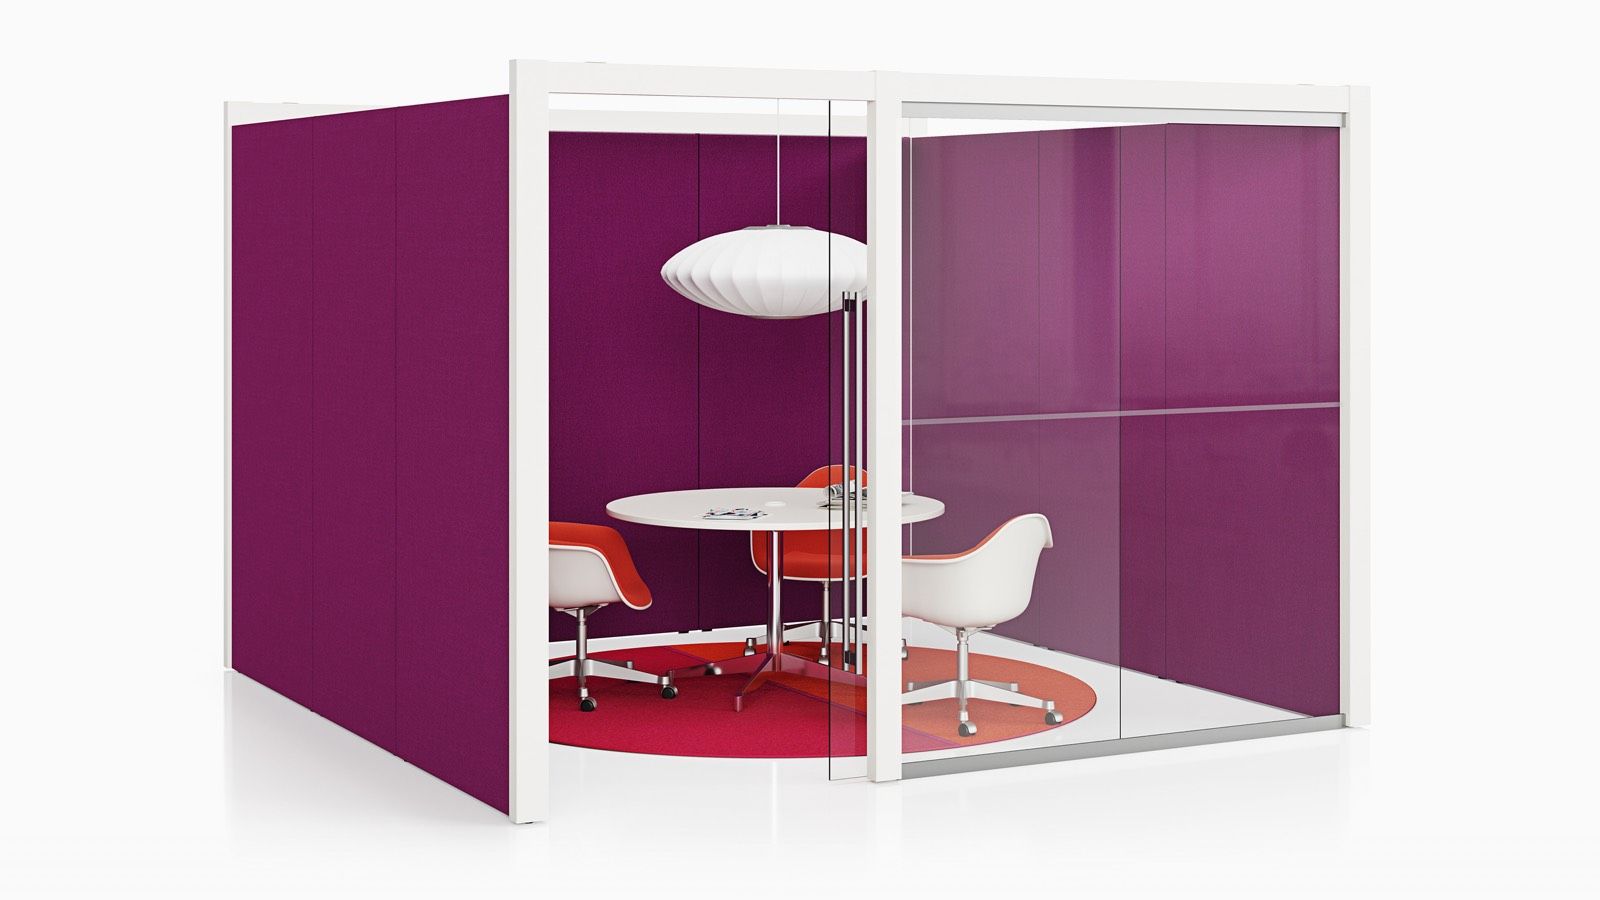 An enclosed Overlay room with purple tackable fabric and glass exterior walls with three chairs and a table inside.